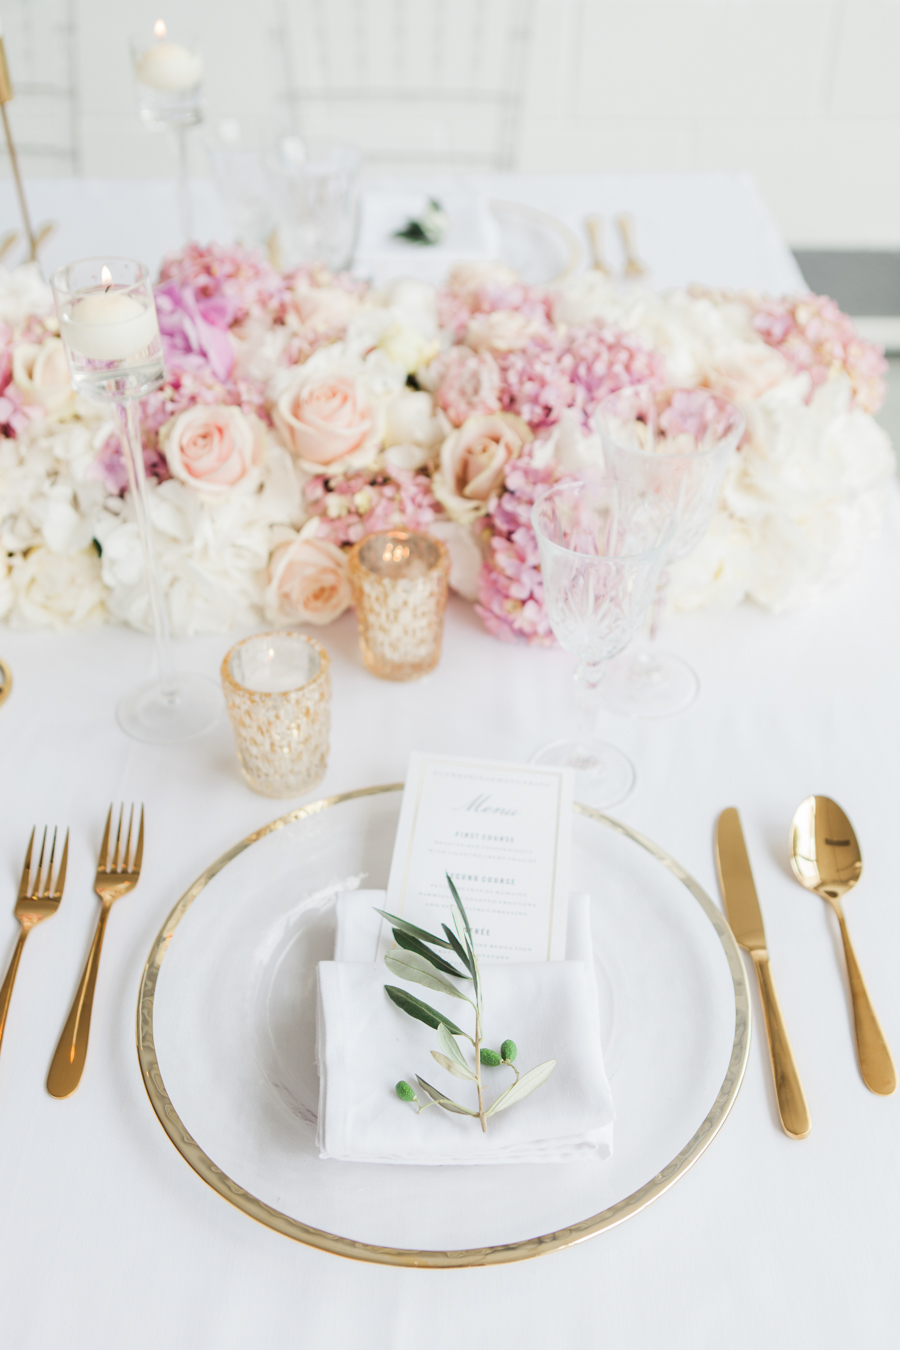 Blush gold feminine wedding styling, image credit Amanda Karen Photography (1)